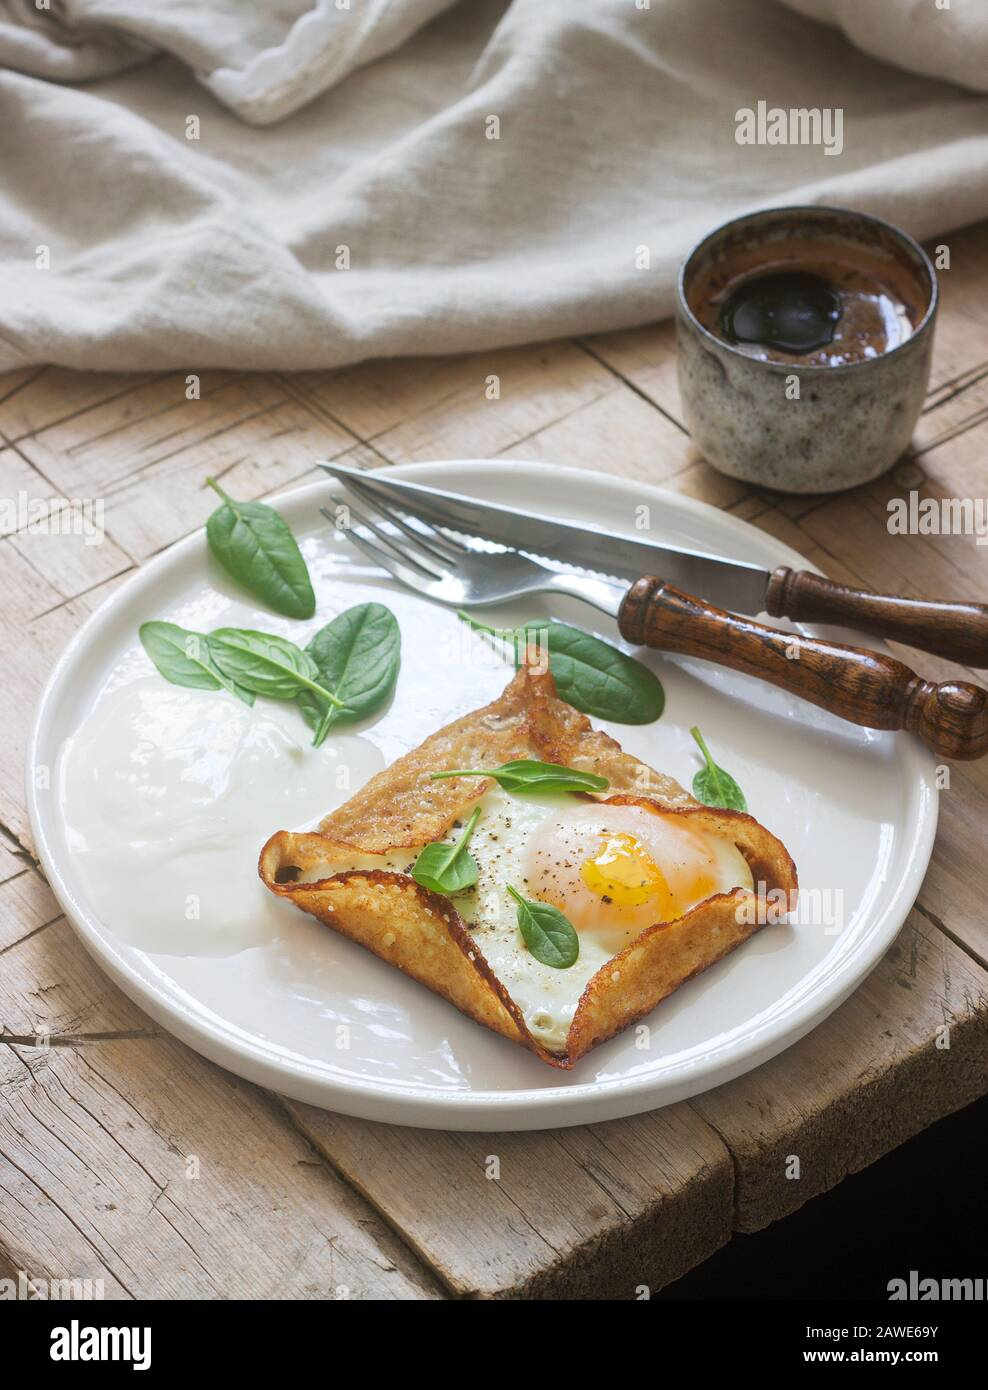 Breton Galette High Resolution Stock Photography And Images Alamy